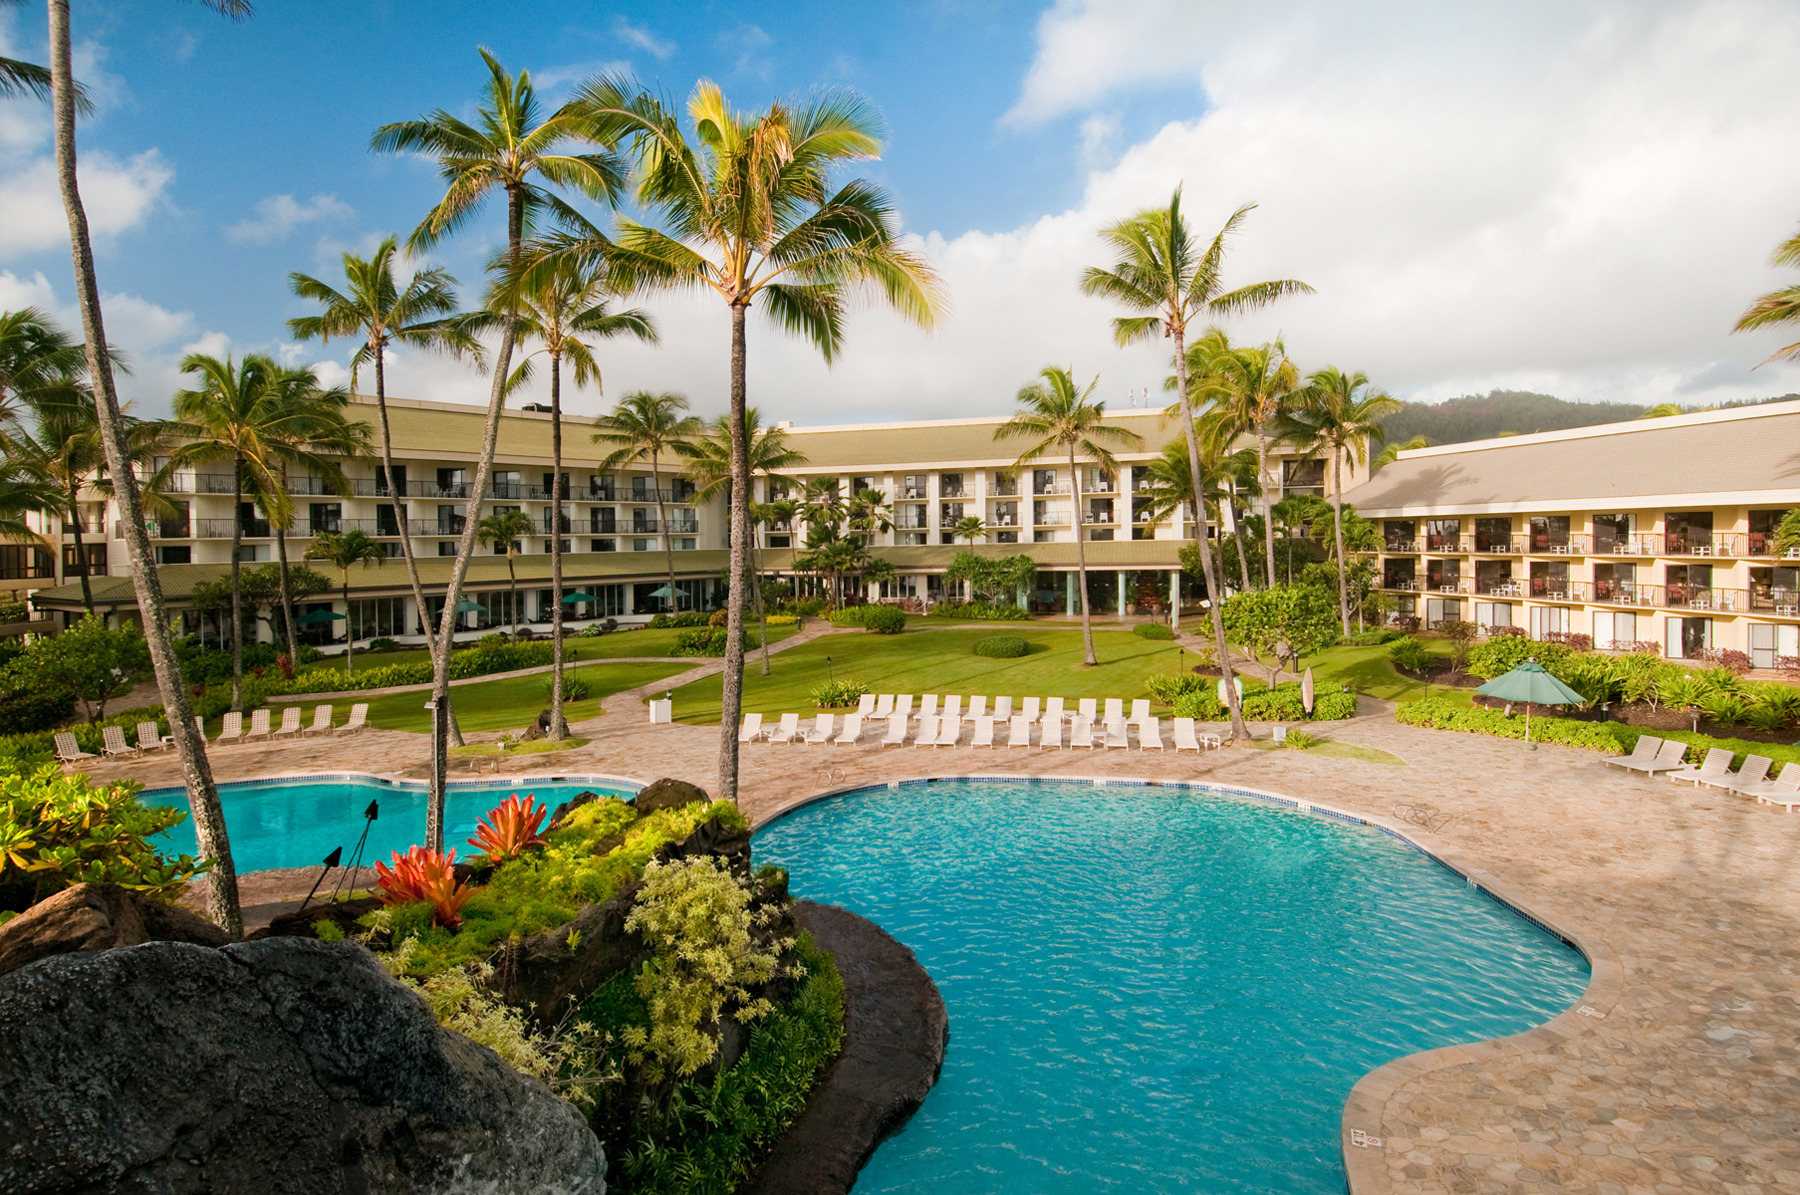 Thb Kauai Beach Resort 2544 Hotel In Lihue